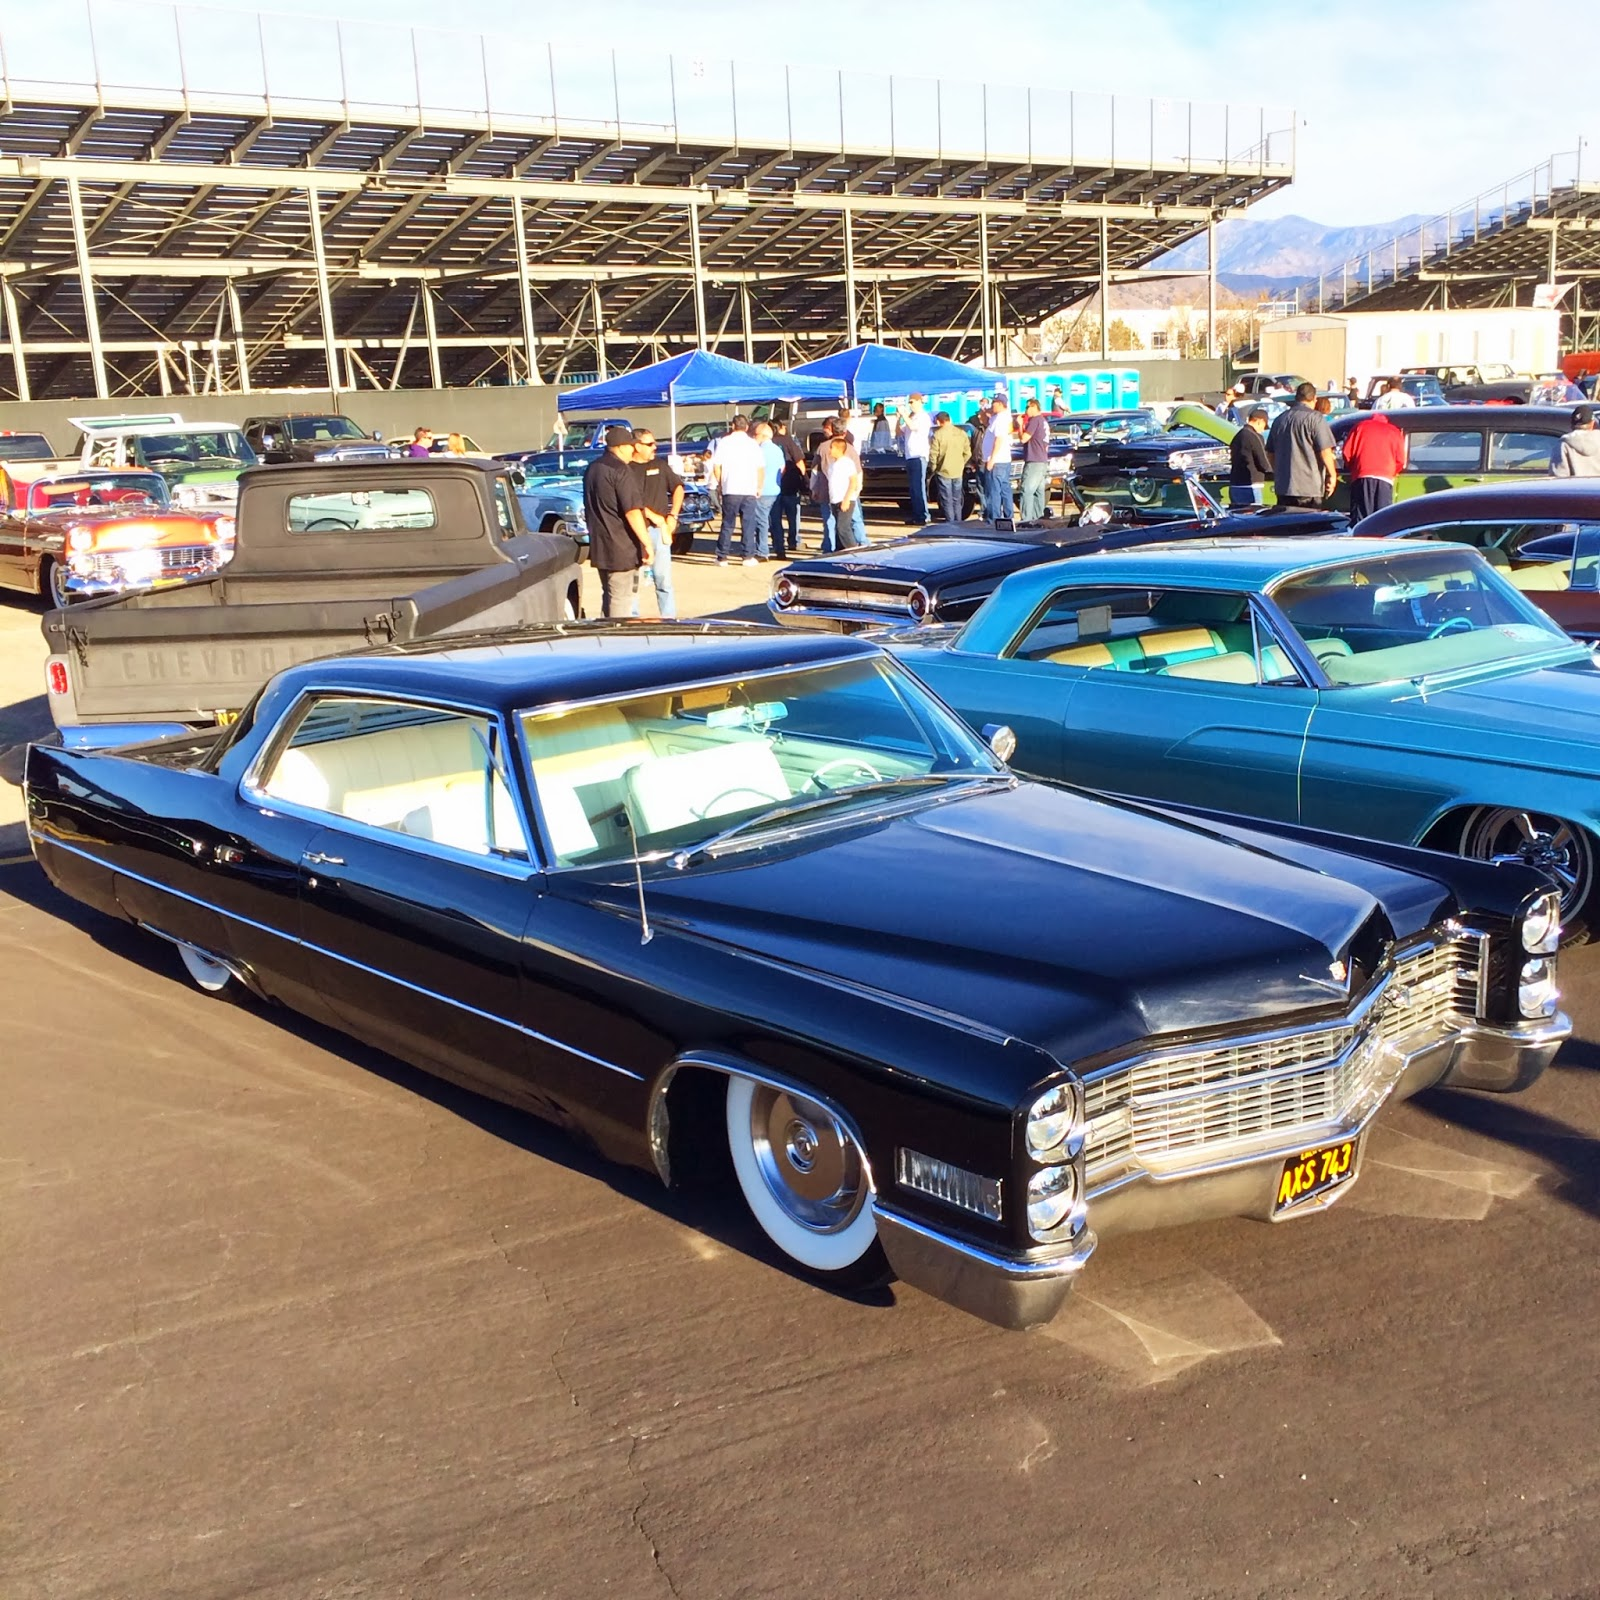 Cadillac Cts For Sale Utah: Covering Classic Cars : The First Pomona Swap Meet Of 2014